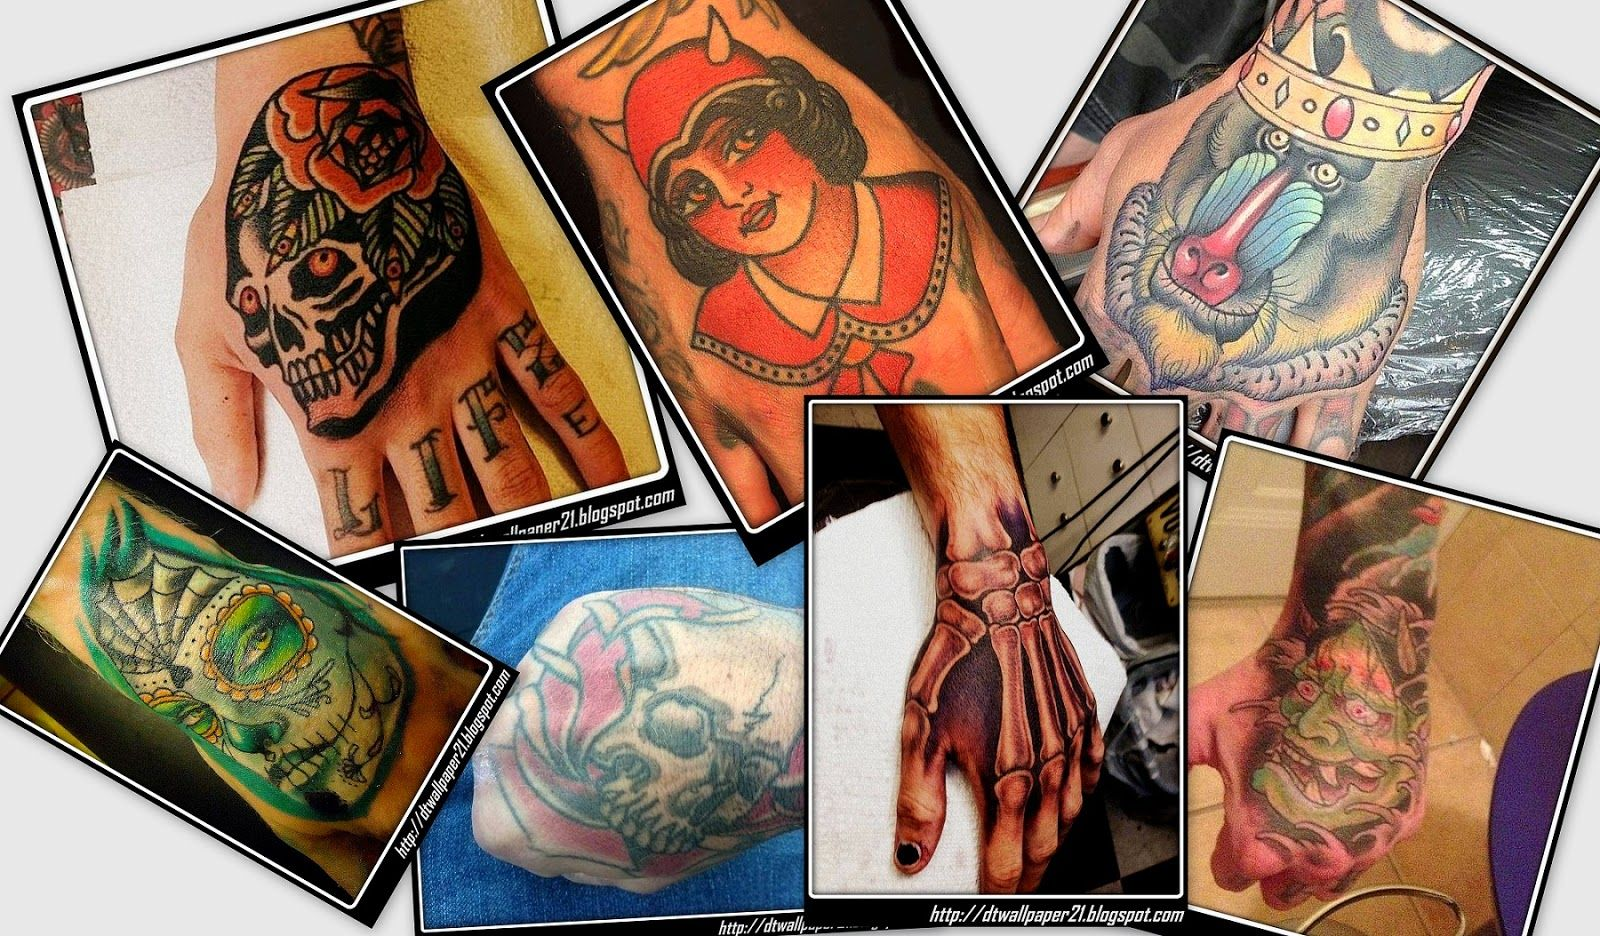 Desktop Wallpaper Free Download Background Screensavers Tattoos For Guys Hand Tattoos For Guys Hand Tattoos Tattoo wallpaper free download